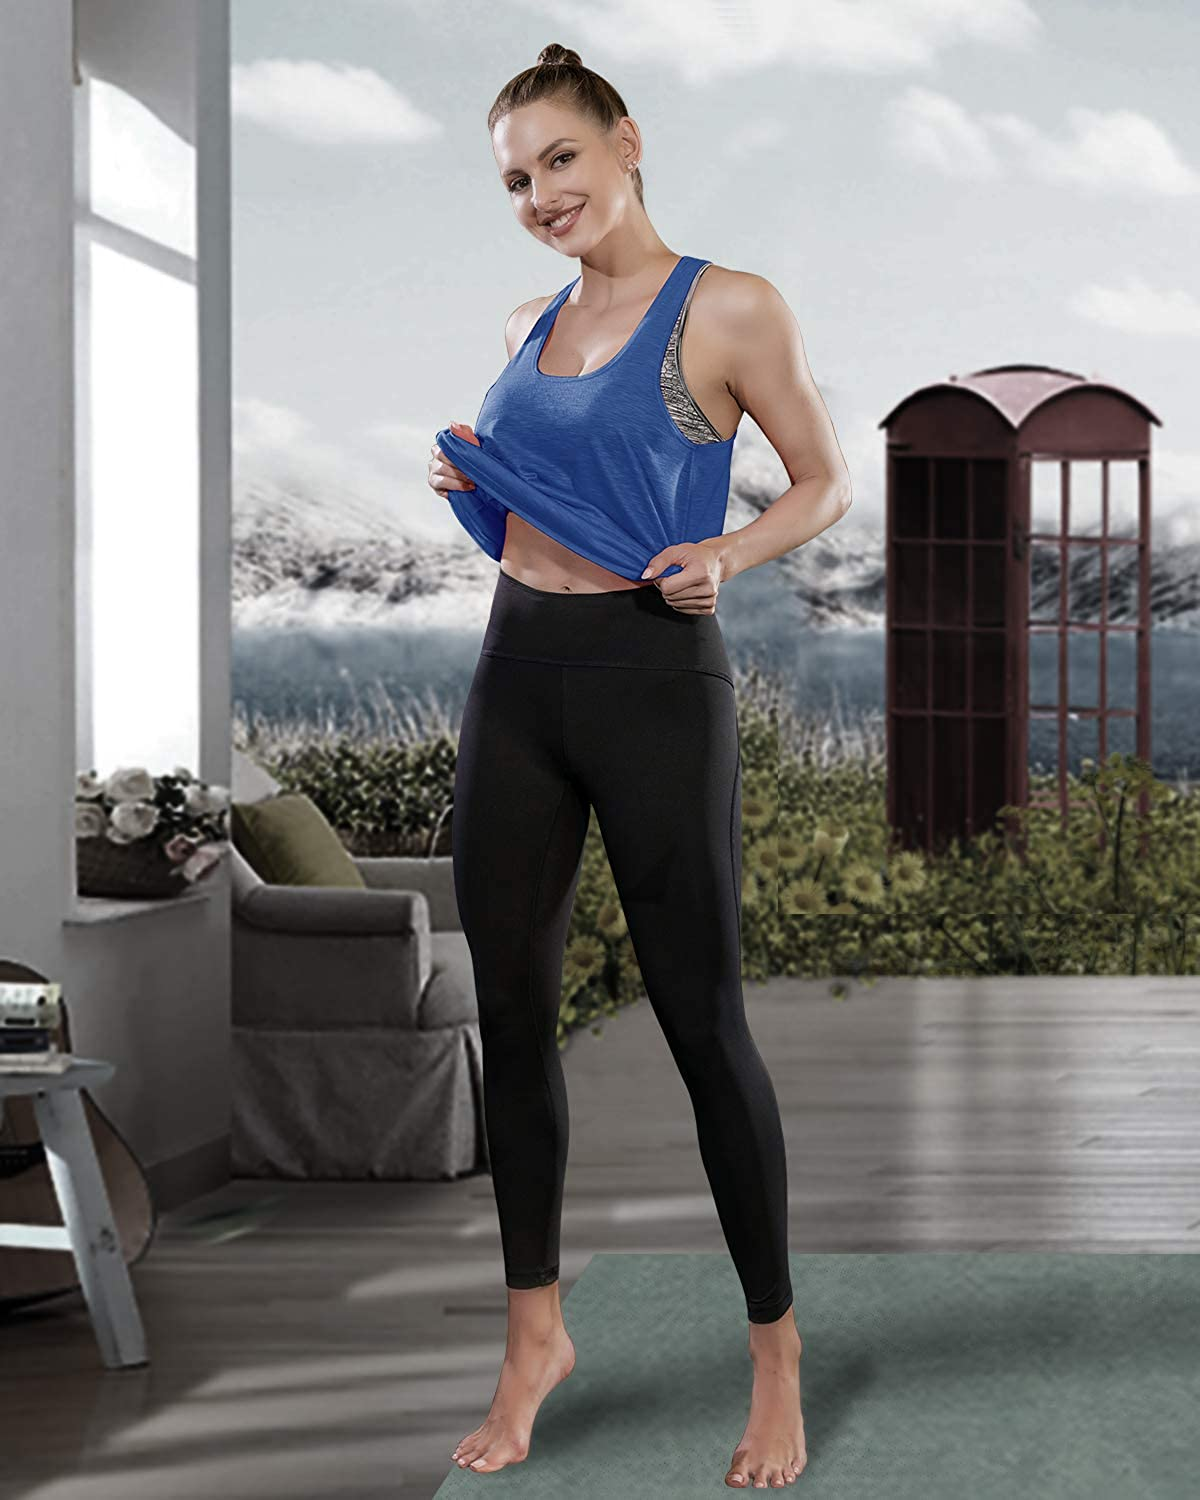 Workout Tops for Women with Built in Bra Tanks Activewear Yoga Running Shirt